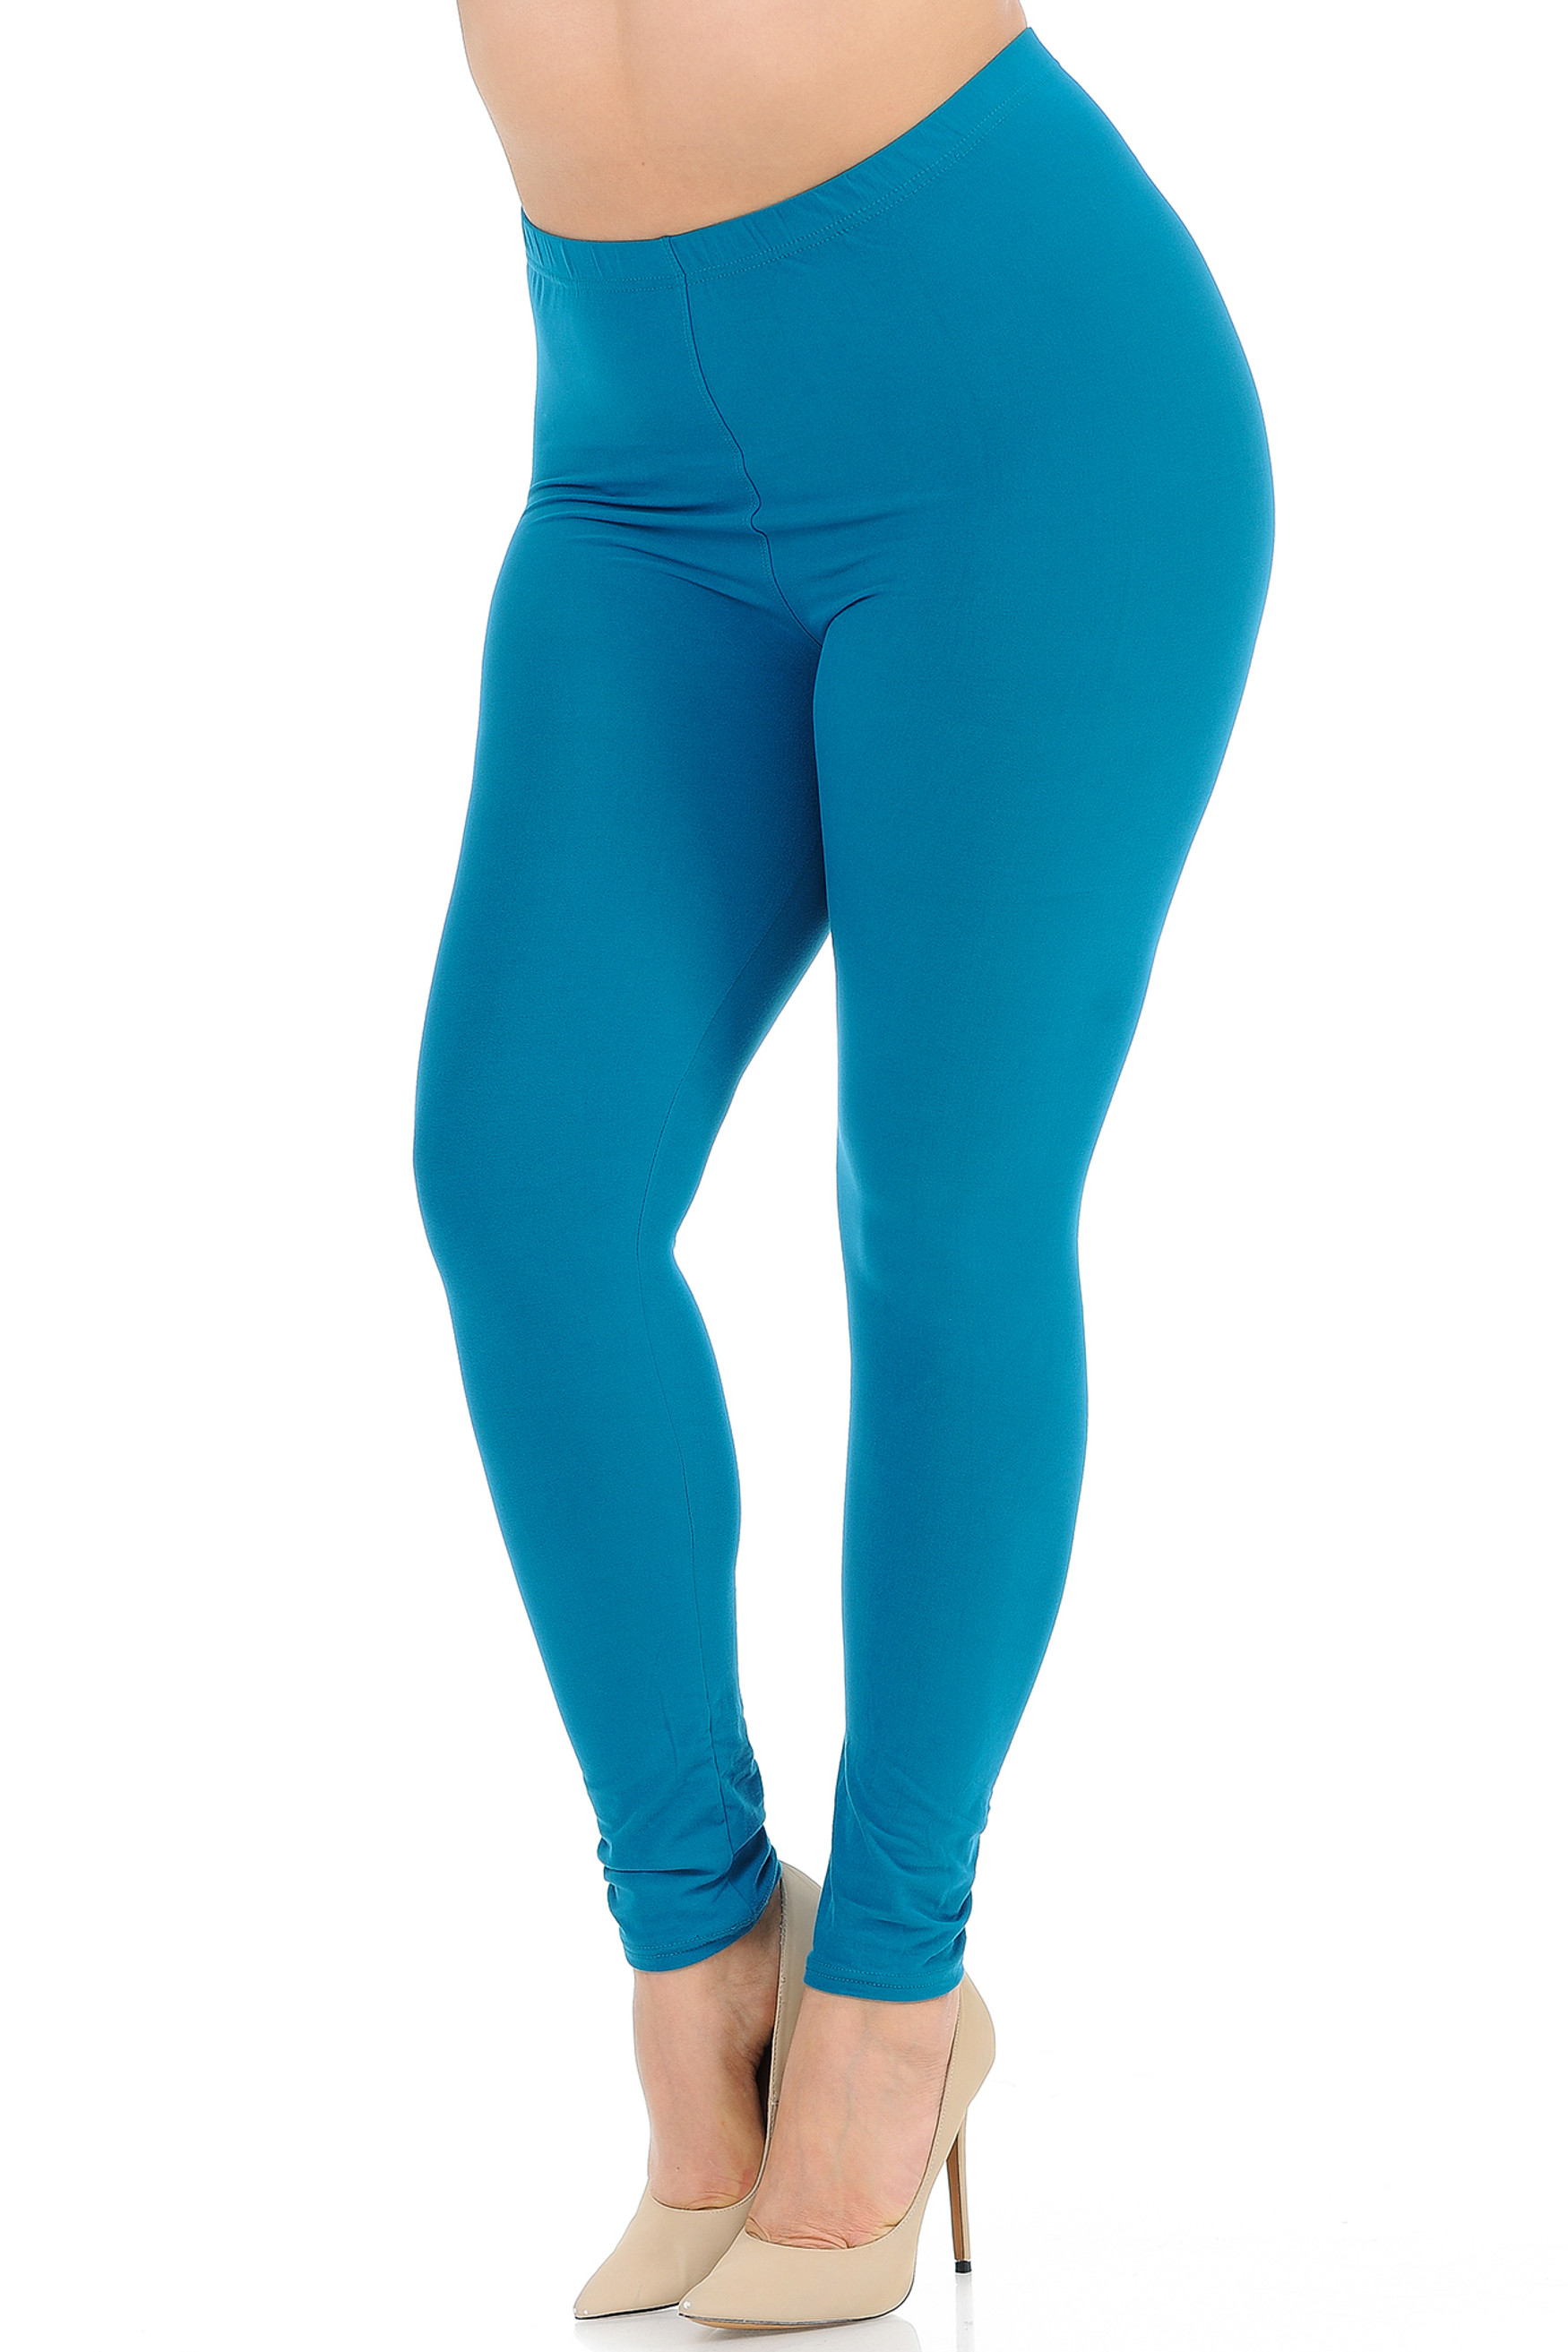 Brushed Basic Solid Extra Plus Size Leggings - 3X-5X - New Mix